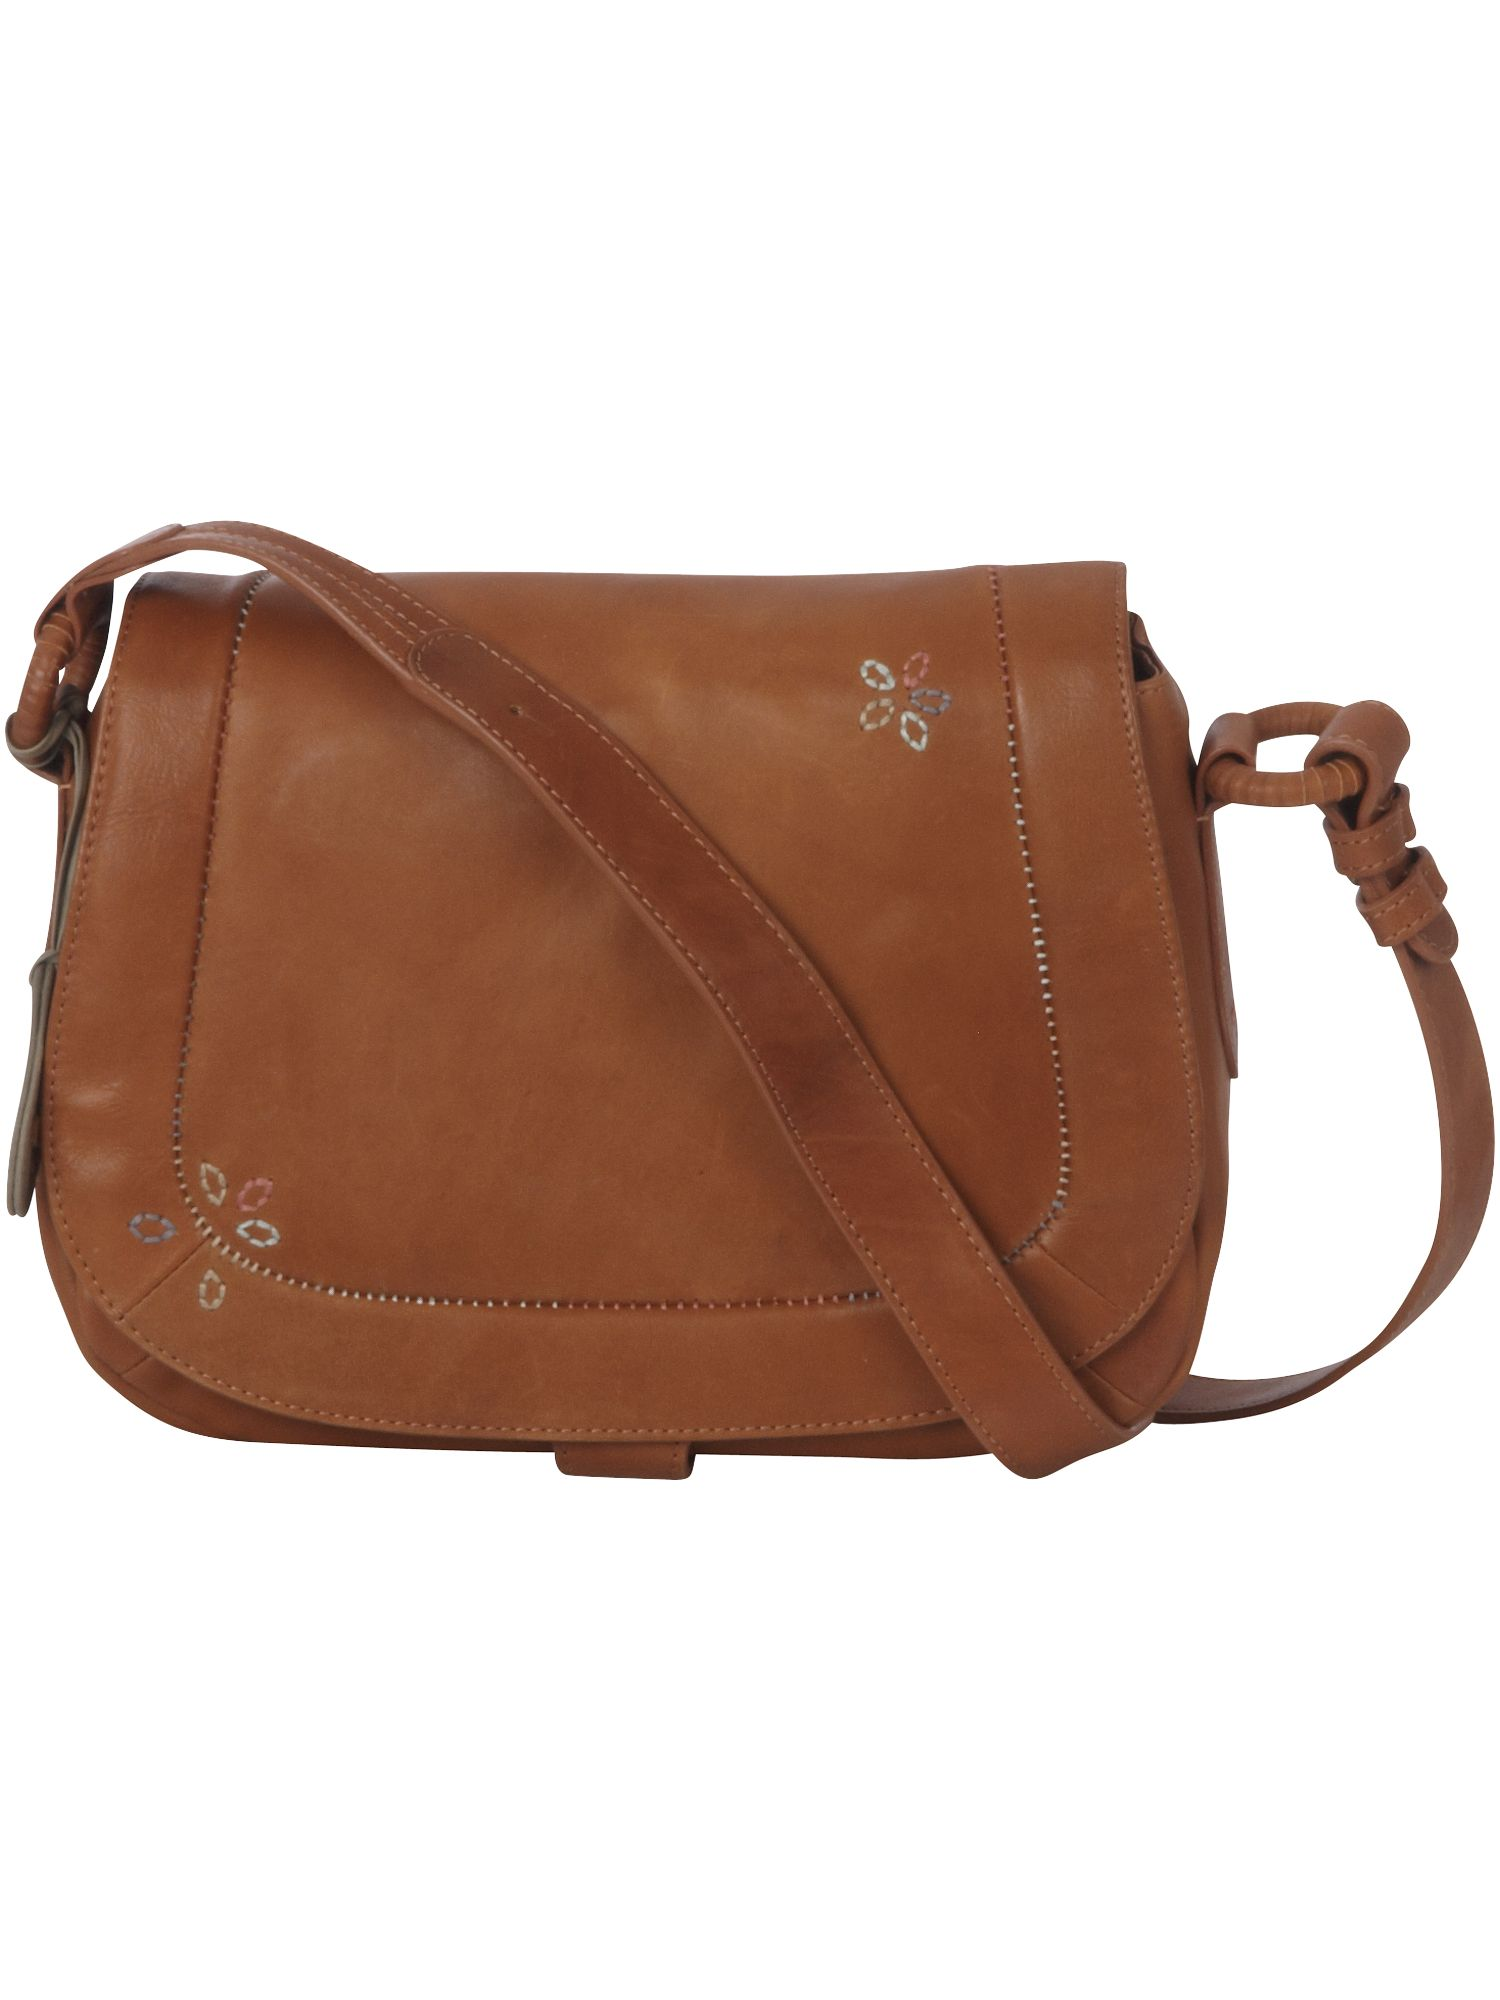 Tavistock large cross body bag